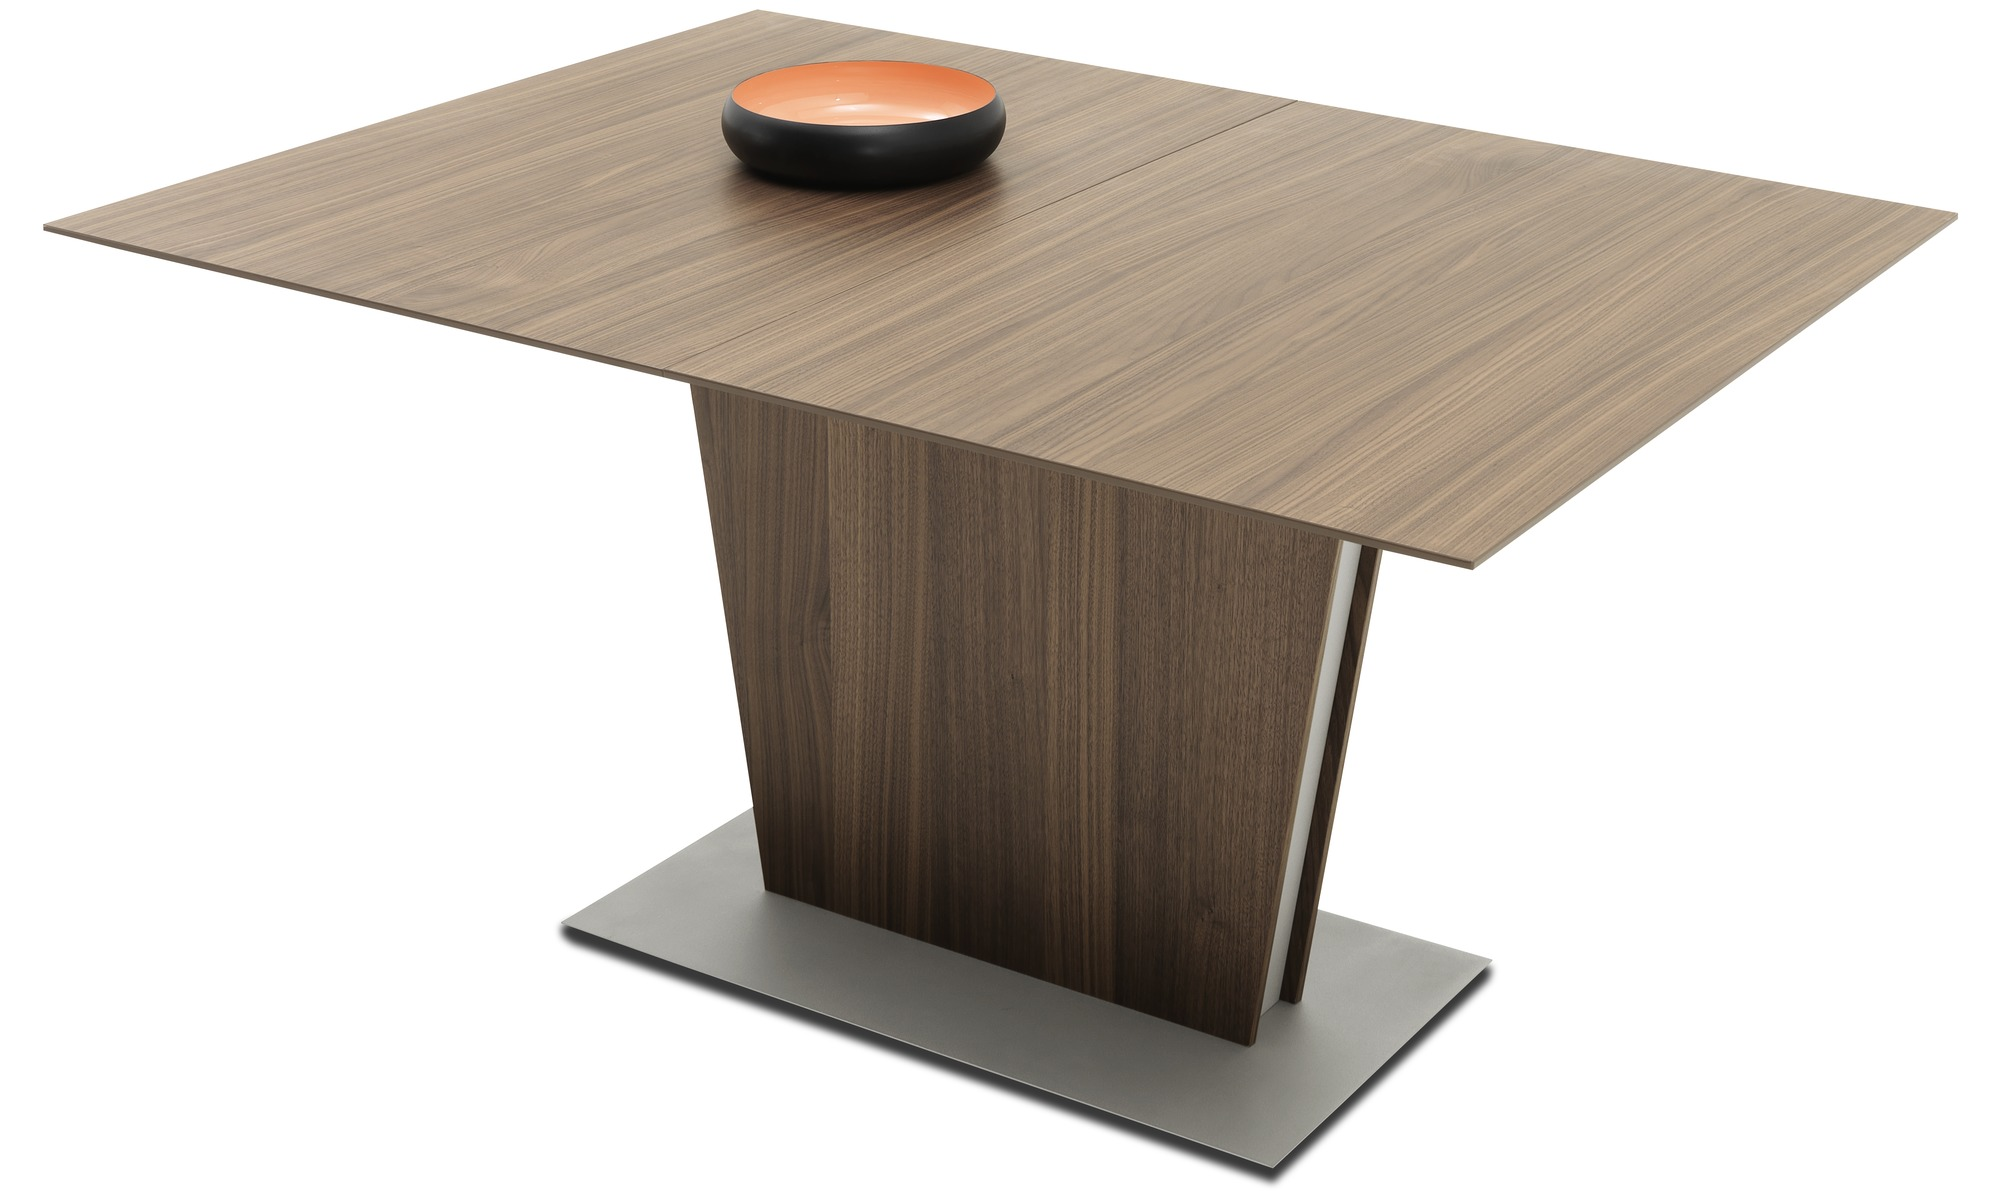 ... Dining tables - Milano table with supplementary tabletop - square -  Brown - Walnut ...